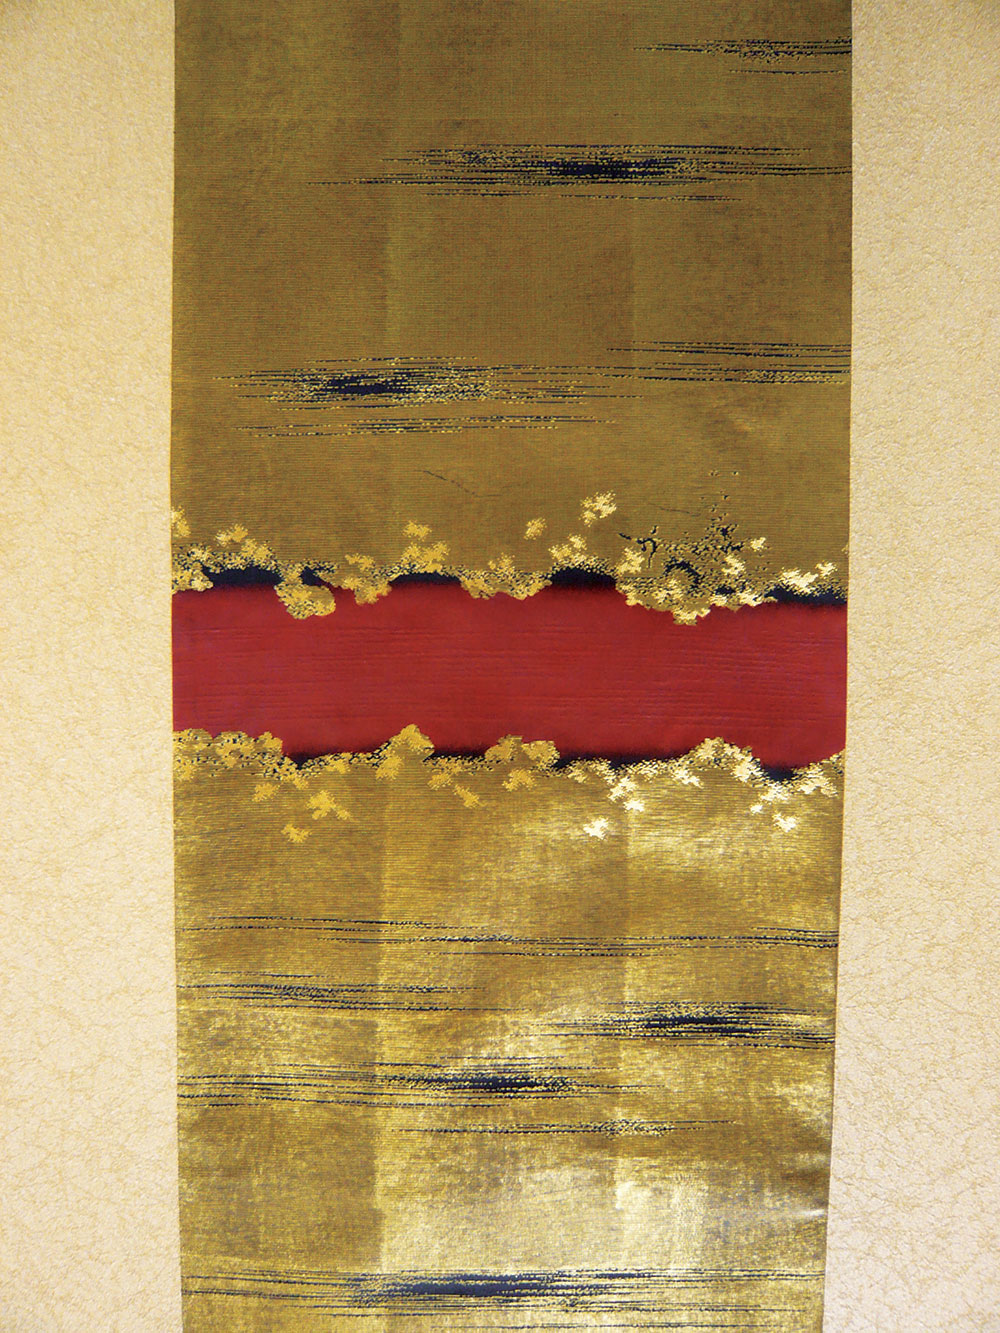 HEWETT DESIGNED OBI - #1 SELLING OBI IN JAPAN IN 2008 FOR TAKASHIMAYA (A).jpg